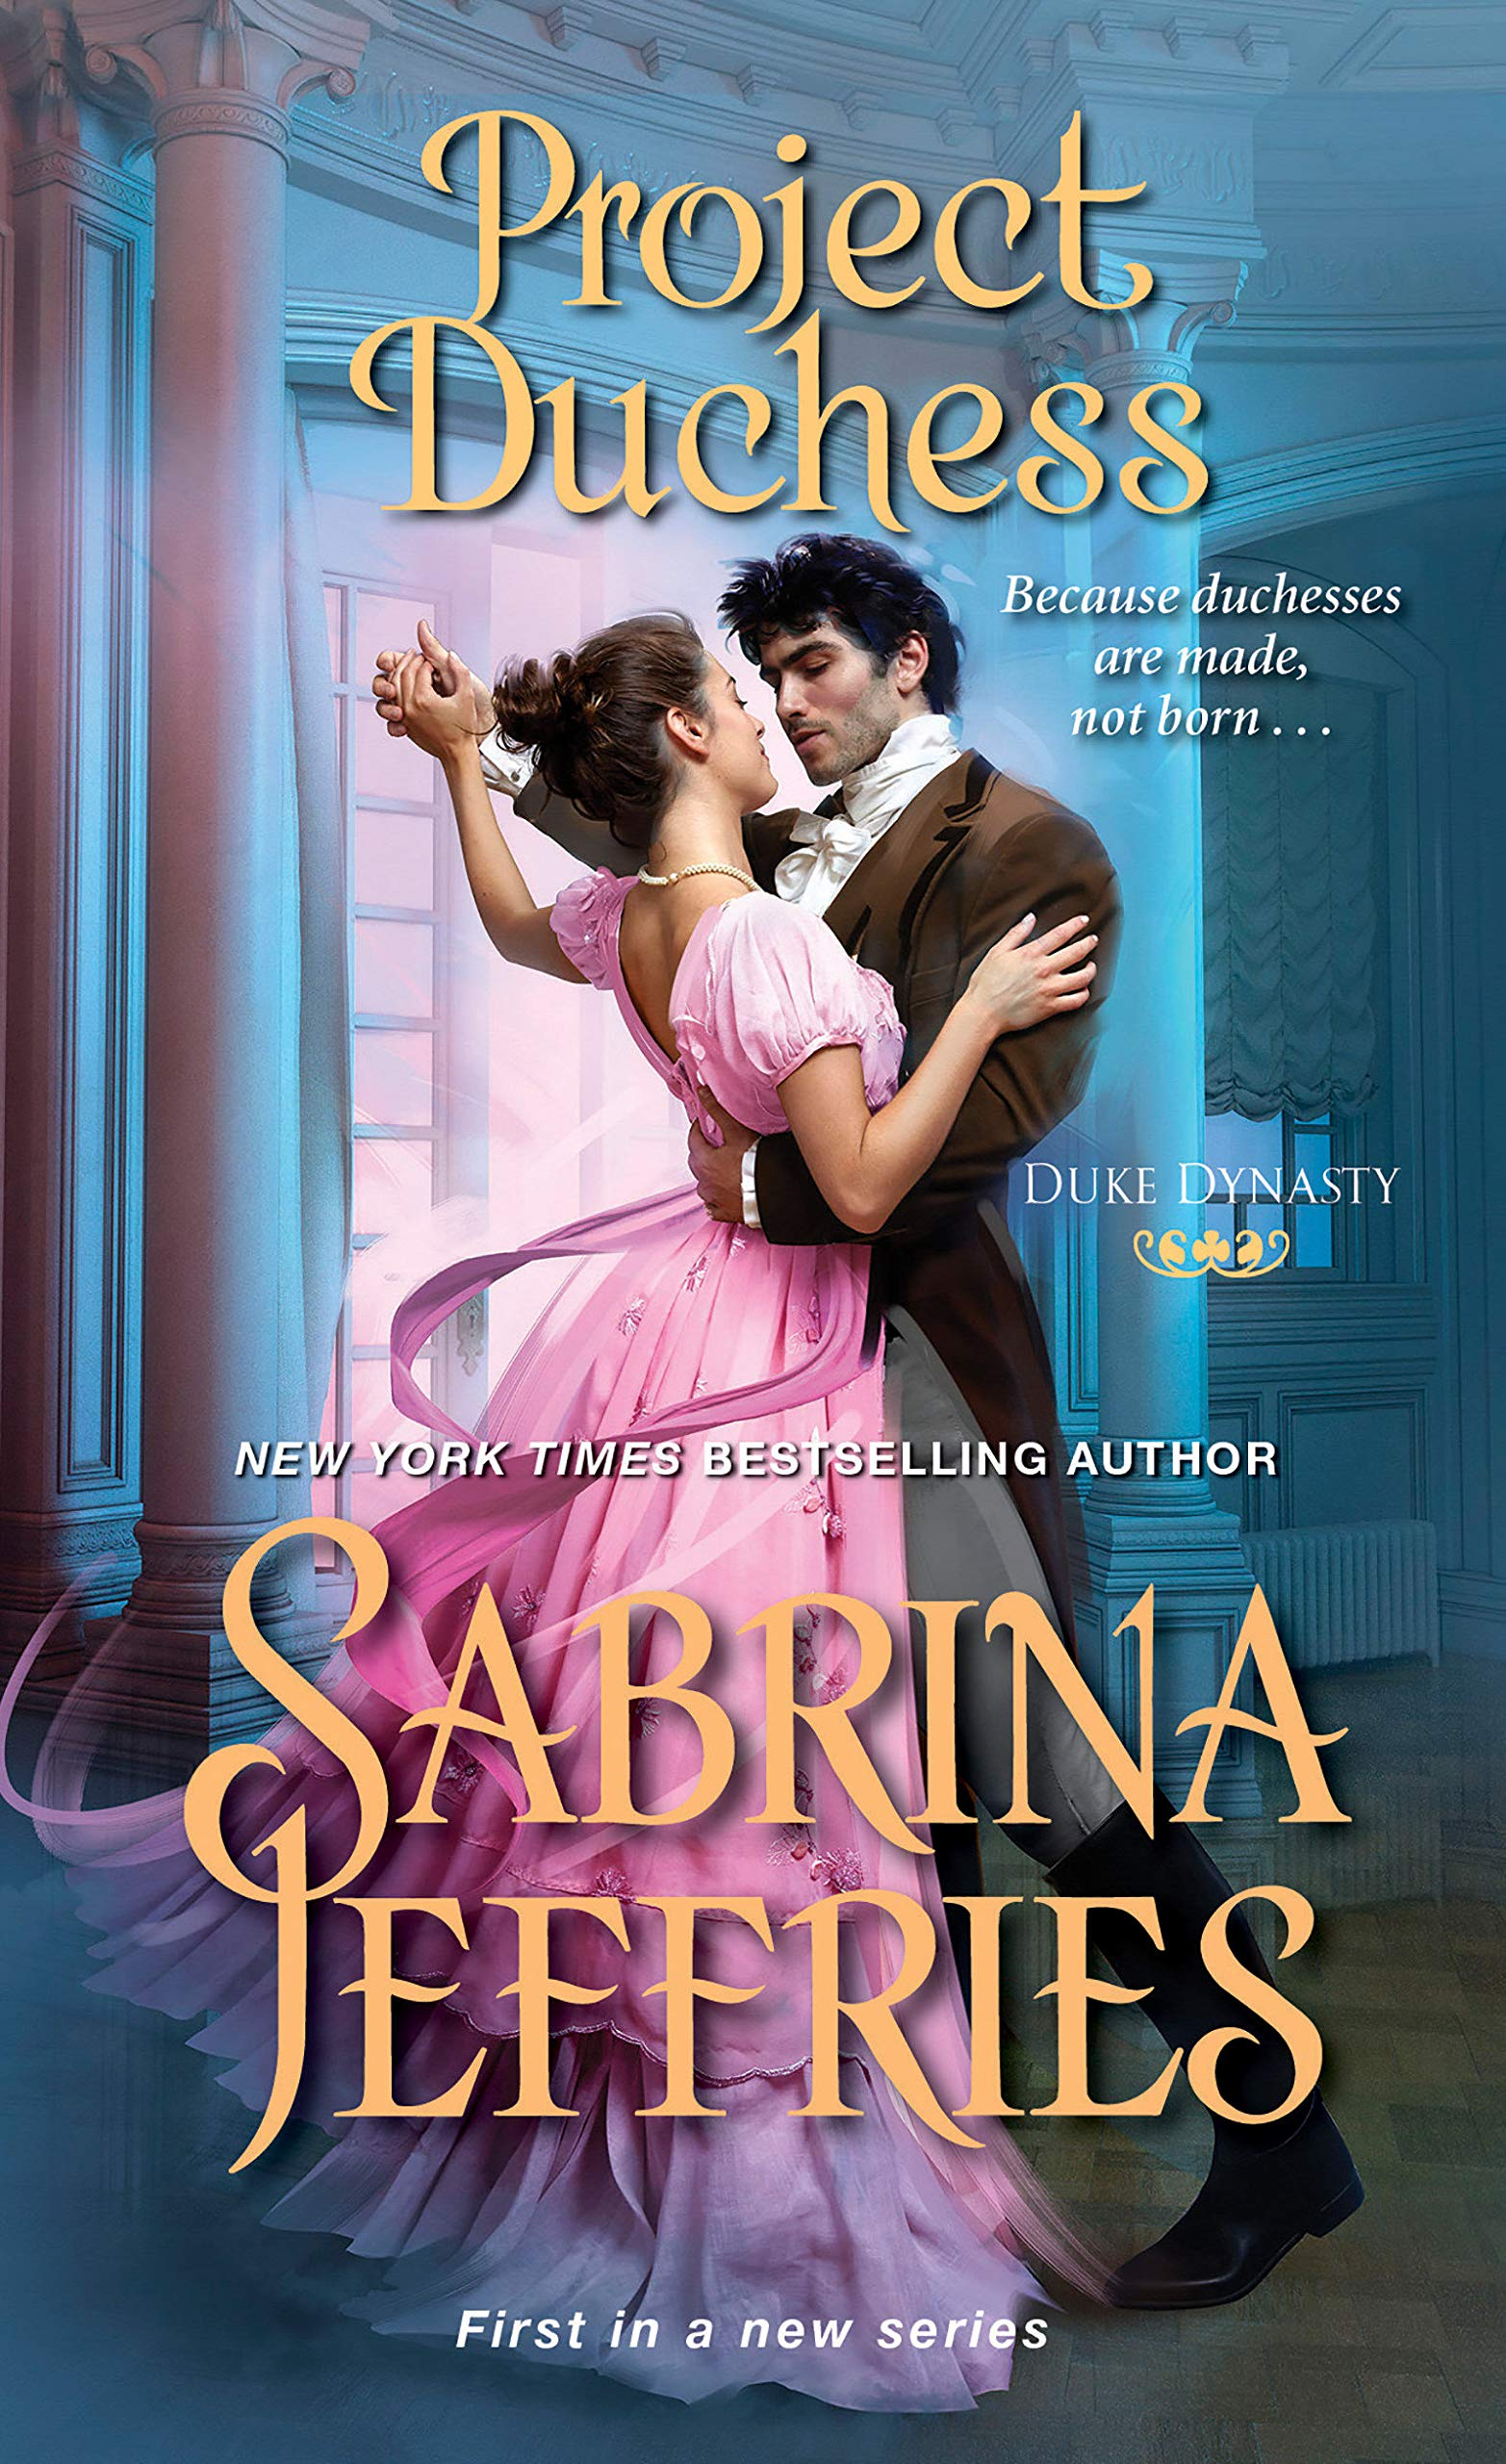 Project Duchess by Sabrina Jeffries 2019